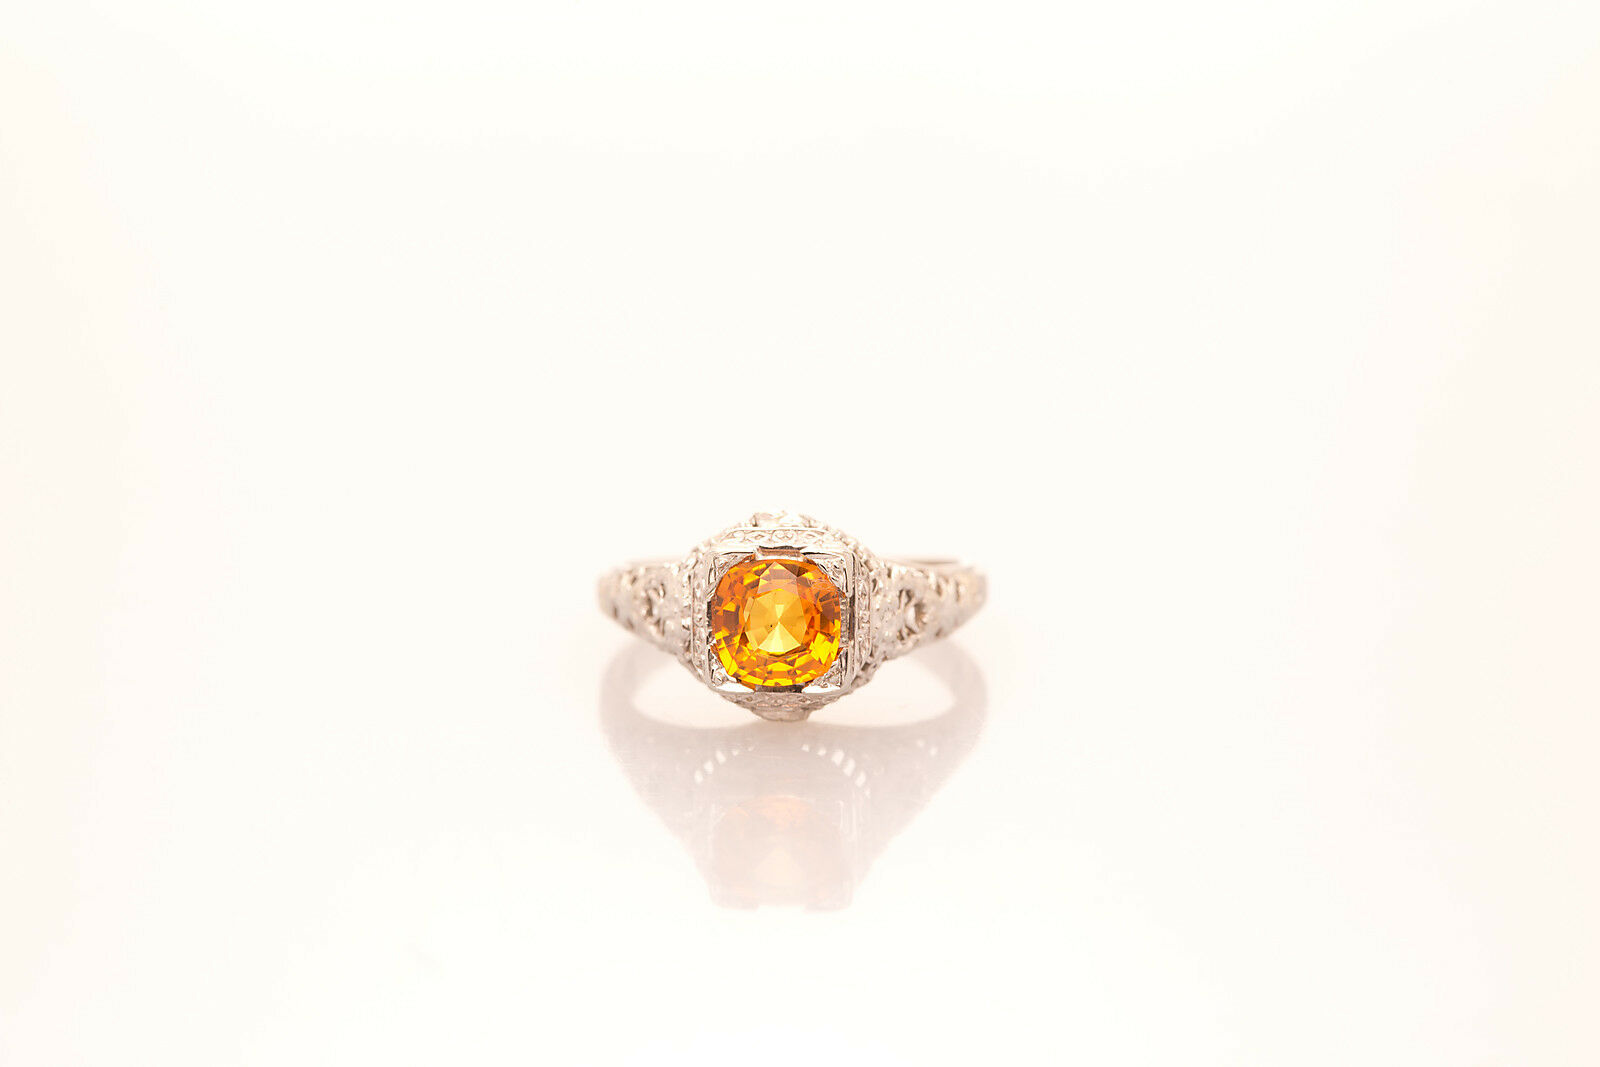 Antique 1920s 1.50ct NATURAL golden Yellow Sapphire 18k White gold Filigree Ring